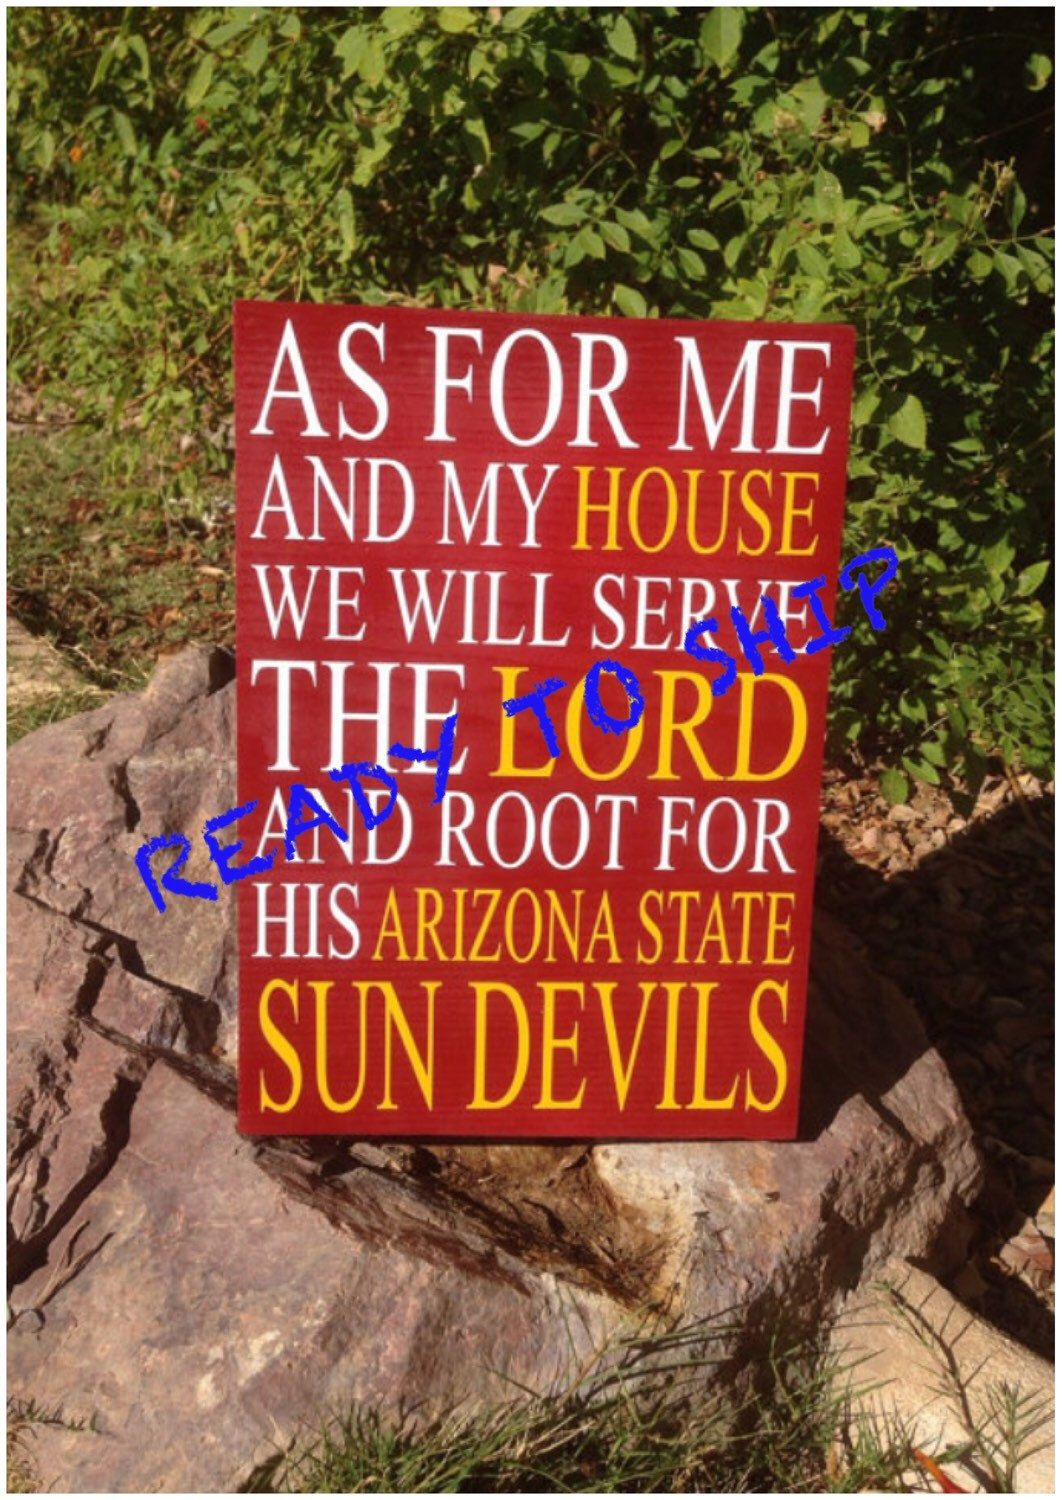 """READY TO SHIP, As For Me And My House We Will Serve The Lord And Root For His Arizona State Sun Devils 8""""x11"""" sign by TheLittleSparkleShop on Etsy https://www.etsy.com/listing/281298528/ready-to-ship-as-for-me-and-my-house-we"""